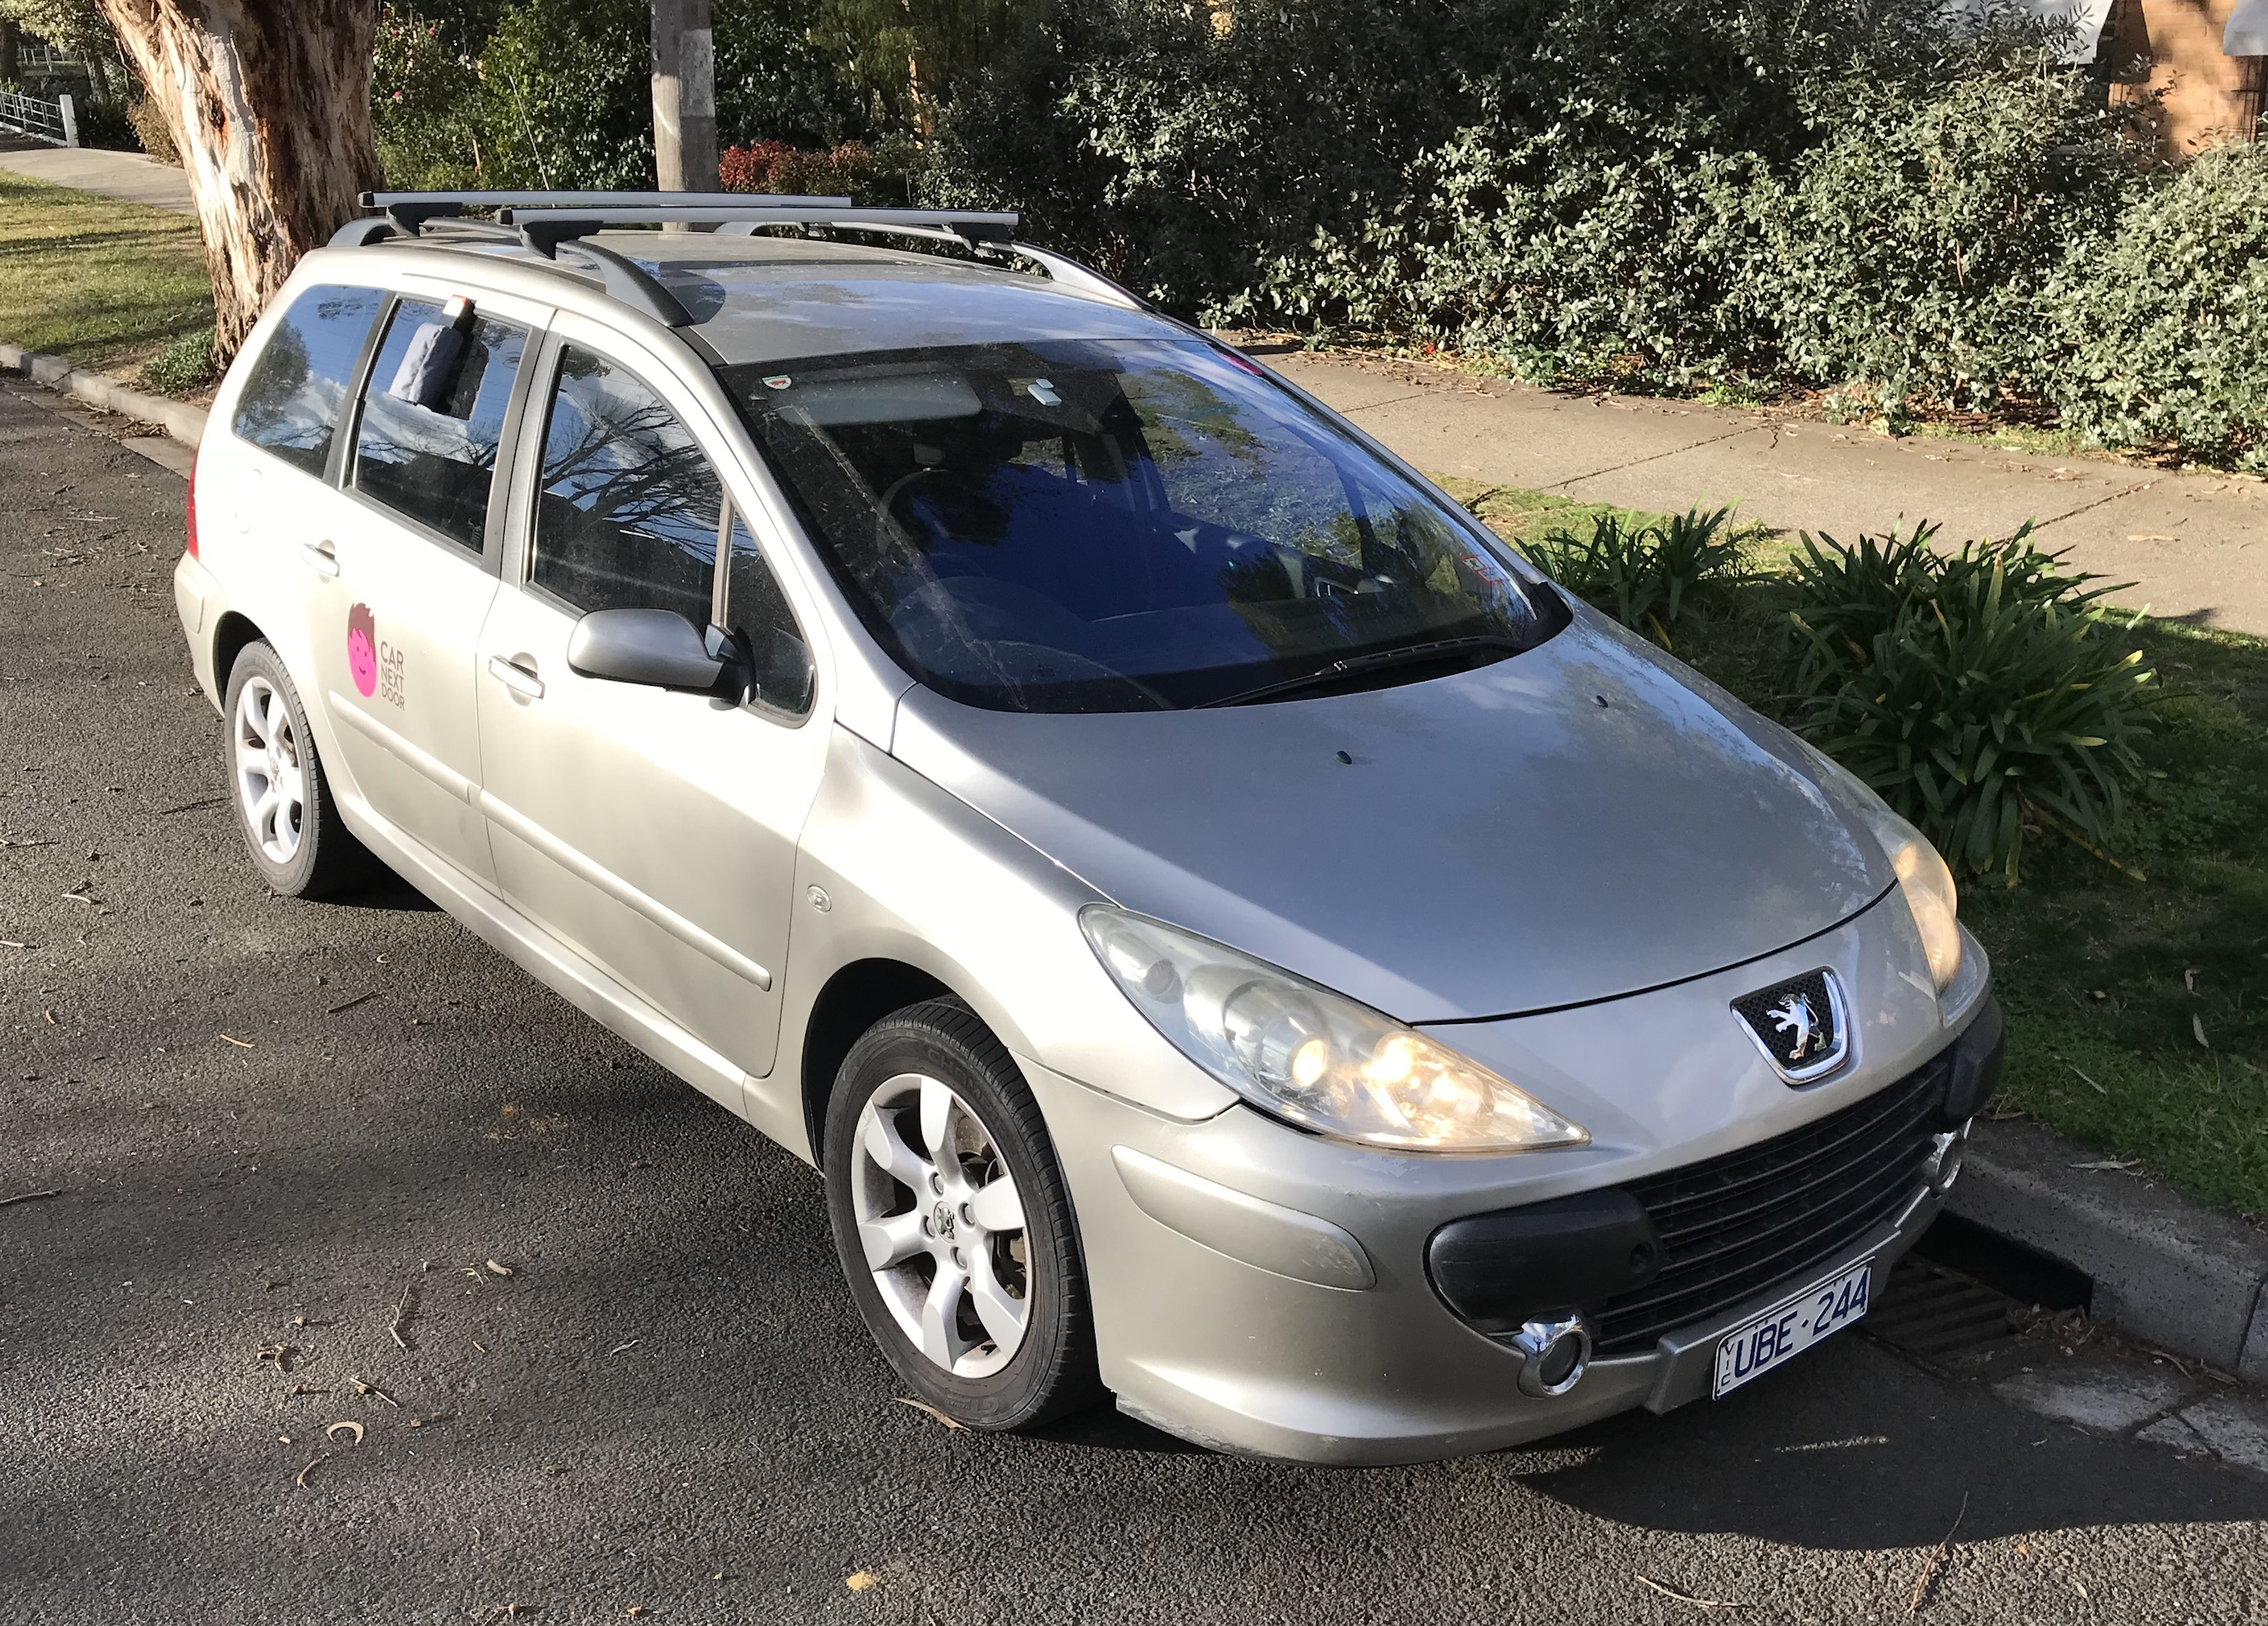 Picture of Steph's 2006 Peugeot 307